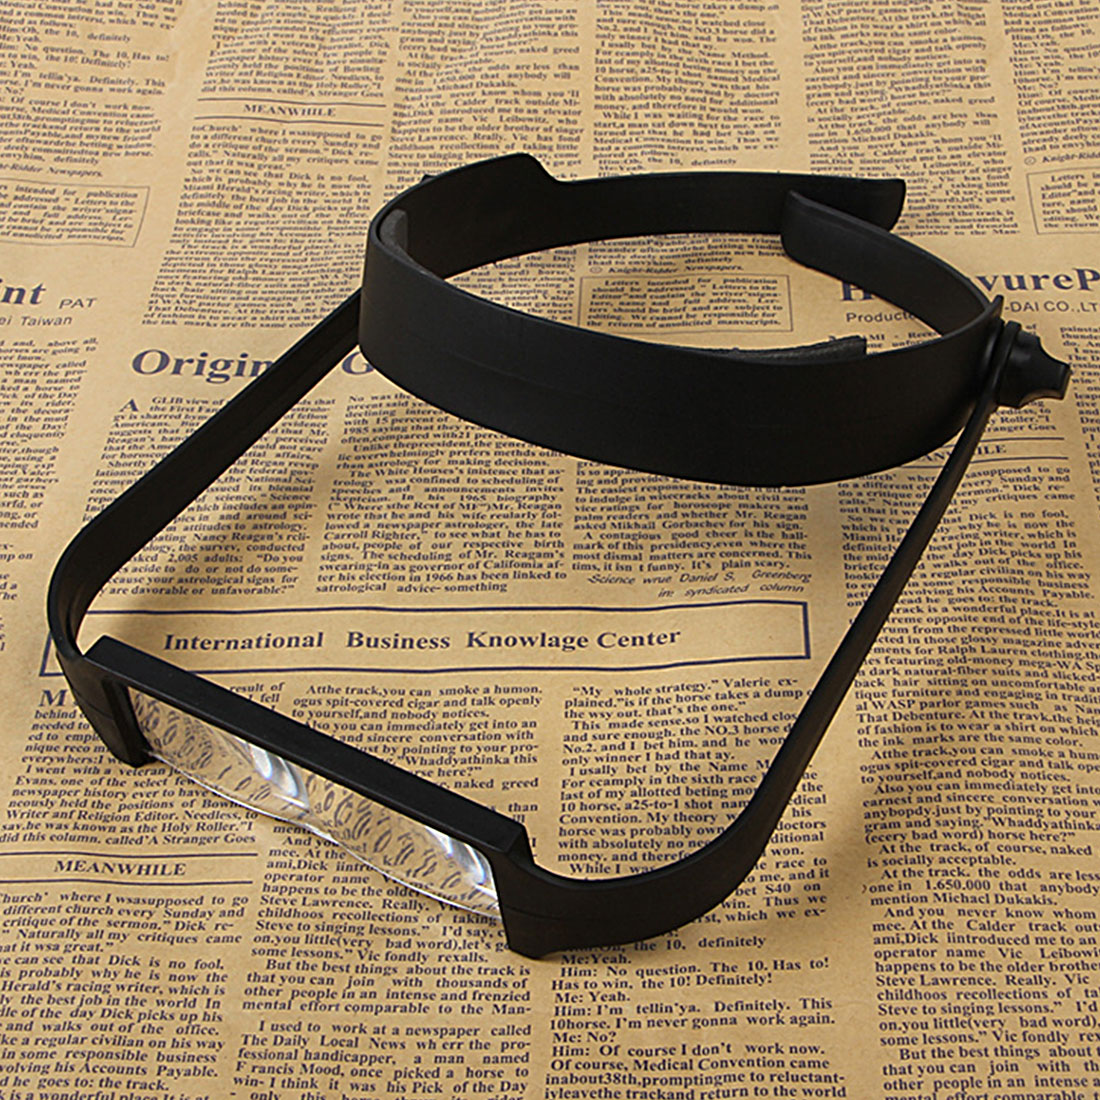 Black Replaceable Lens Loupe Magnifier 1.6x 2.0x 2.5x 3.5x Head Headband Magnify Glass Lens Loupe Made of Optical Glass